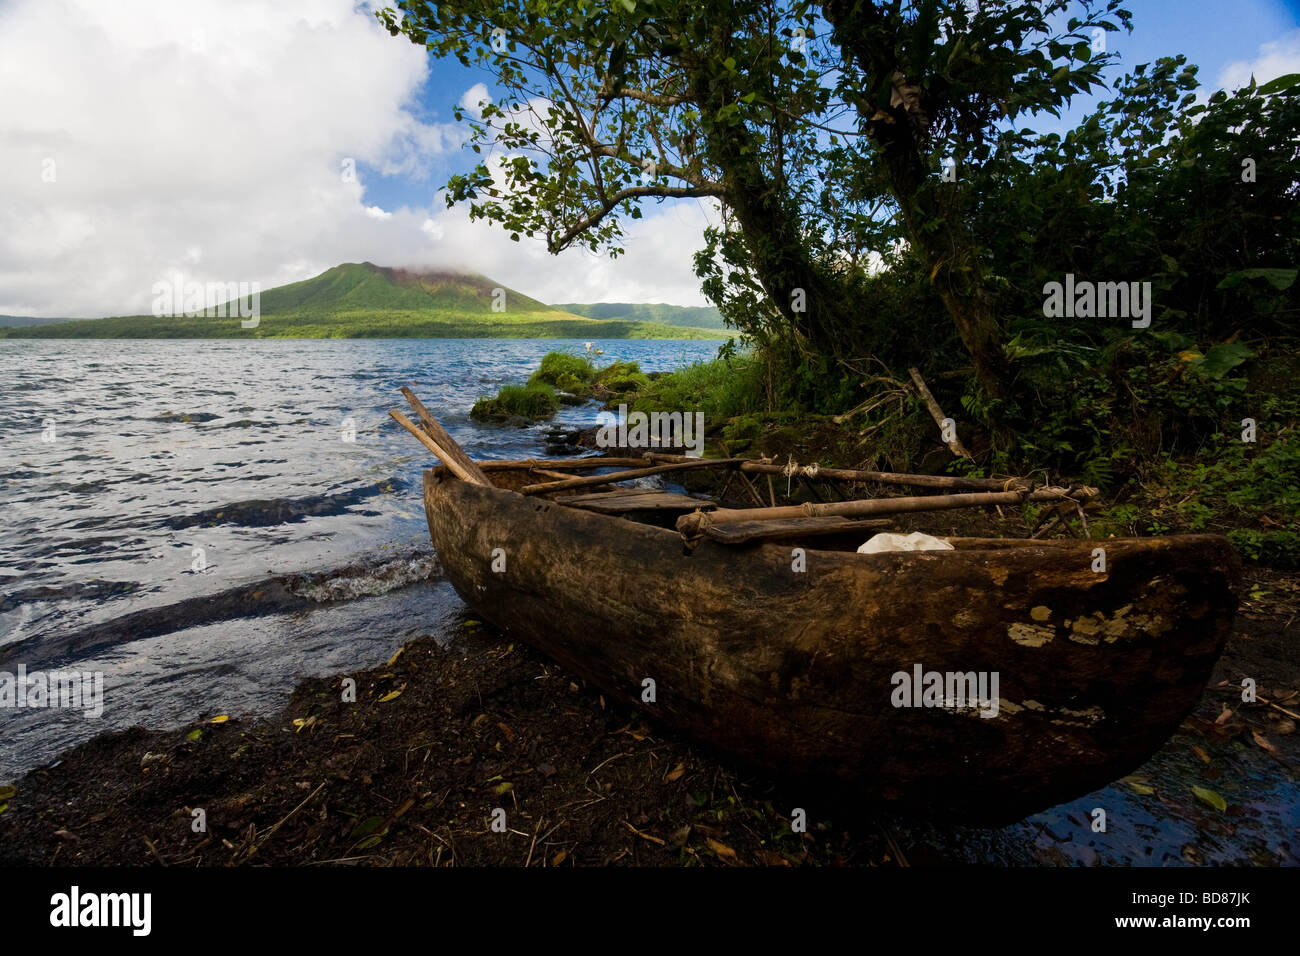 The dug out canoe used to cross Lake Letas to reach Mount Garet on Gaua Vanuatu - Stock Image